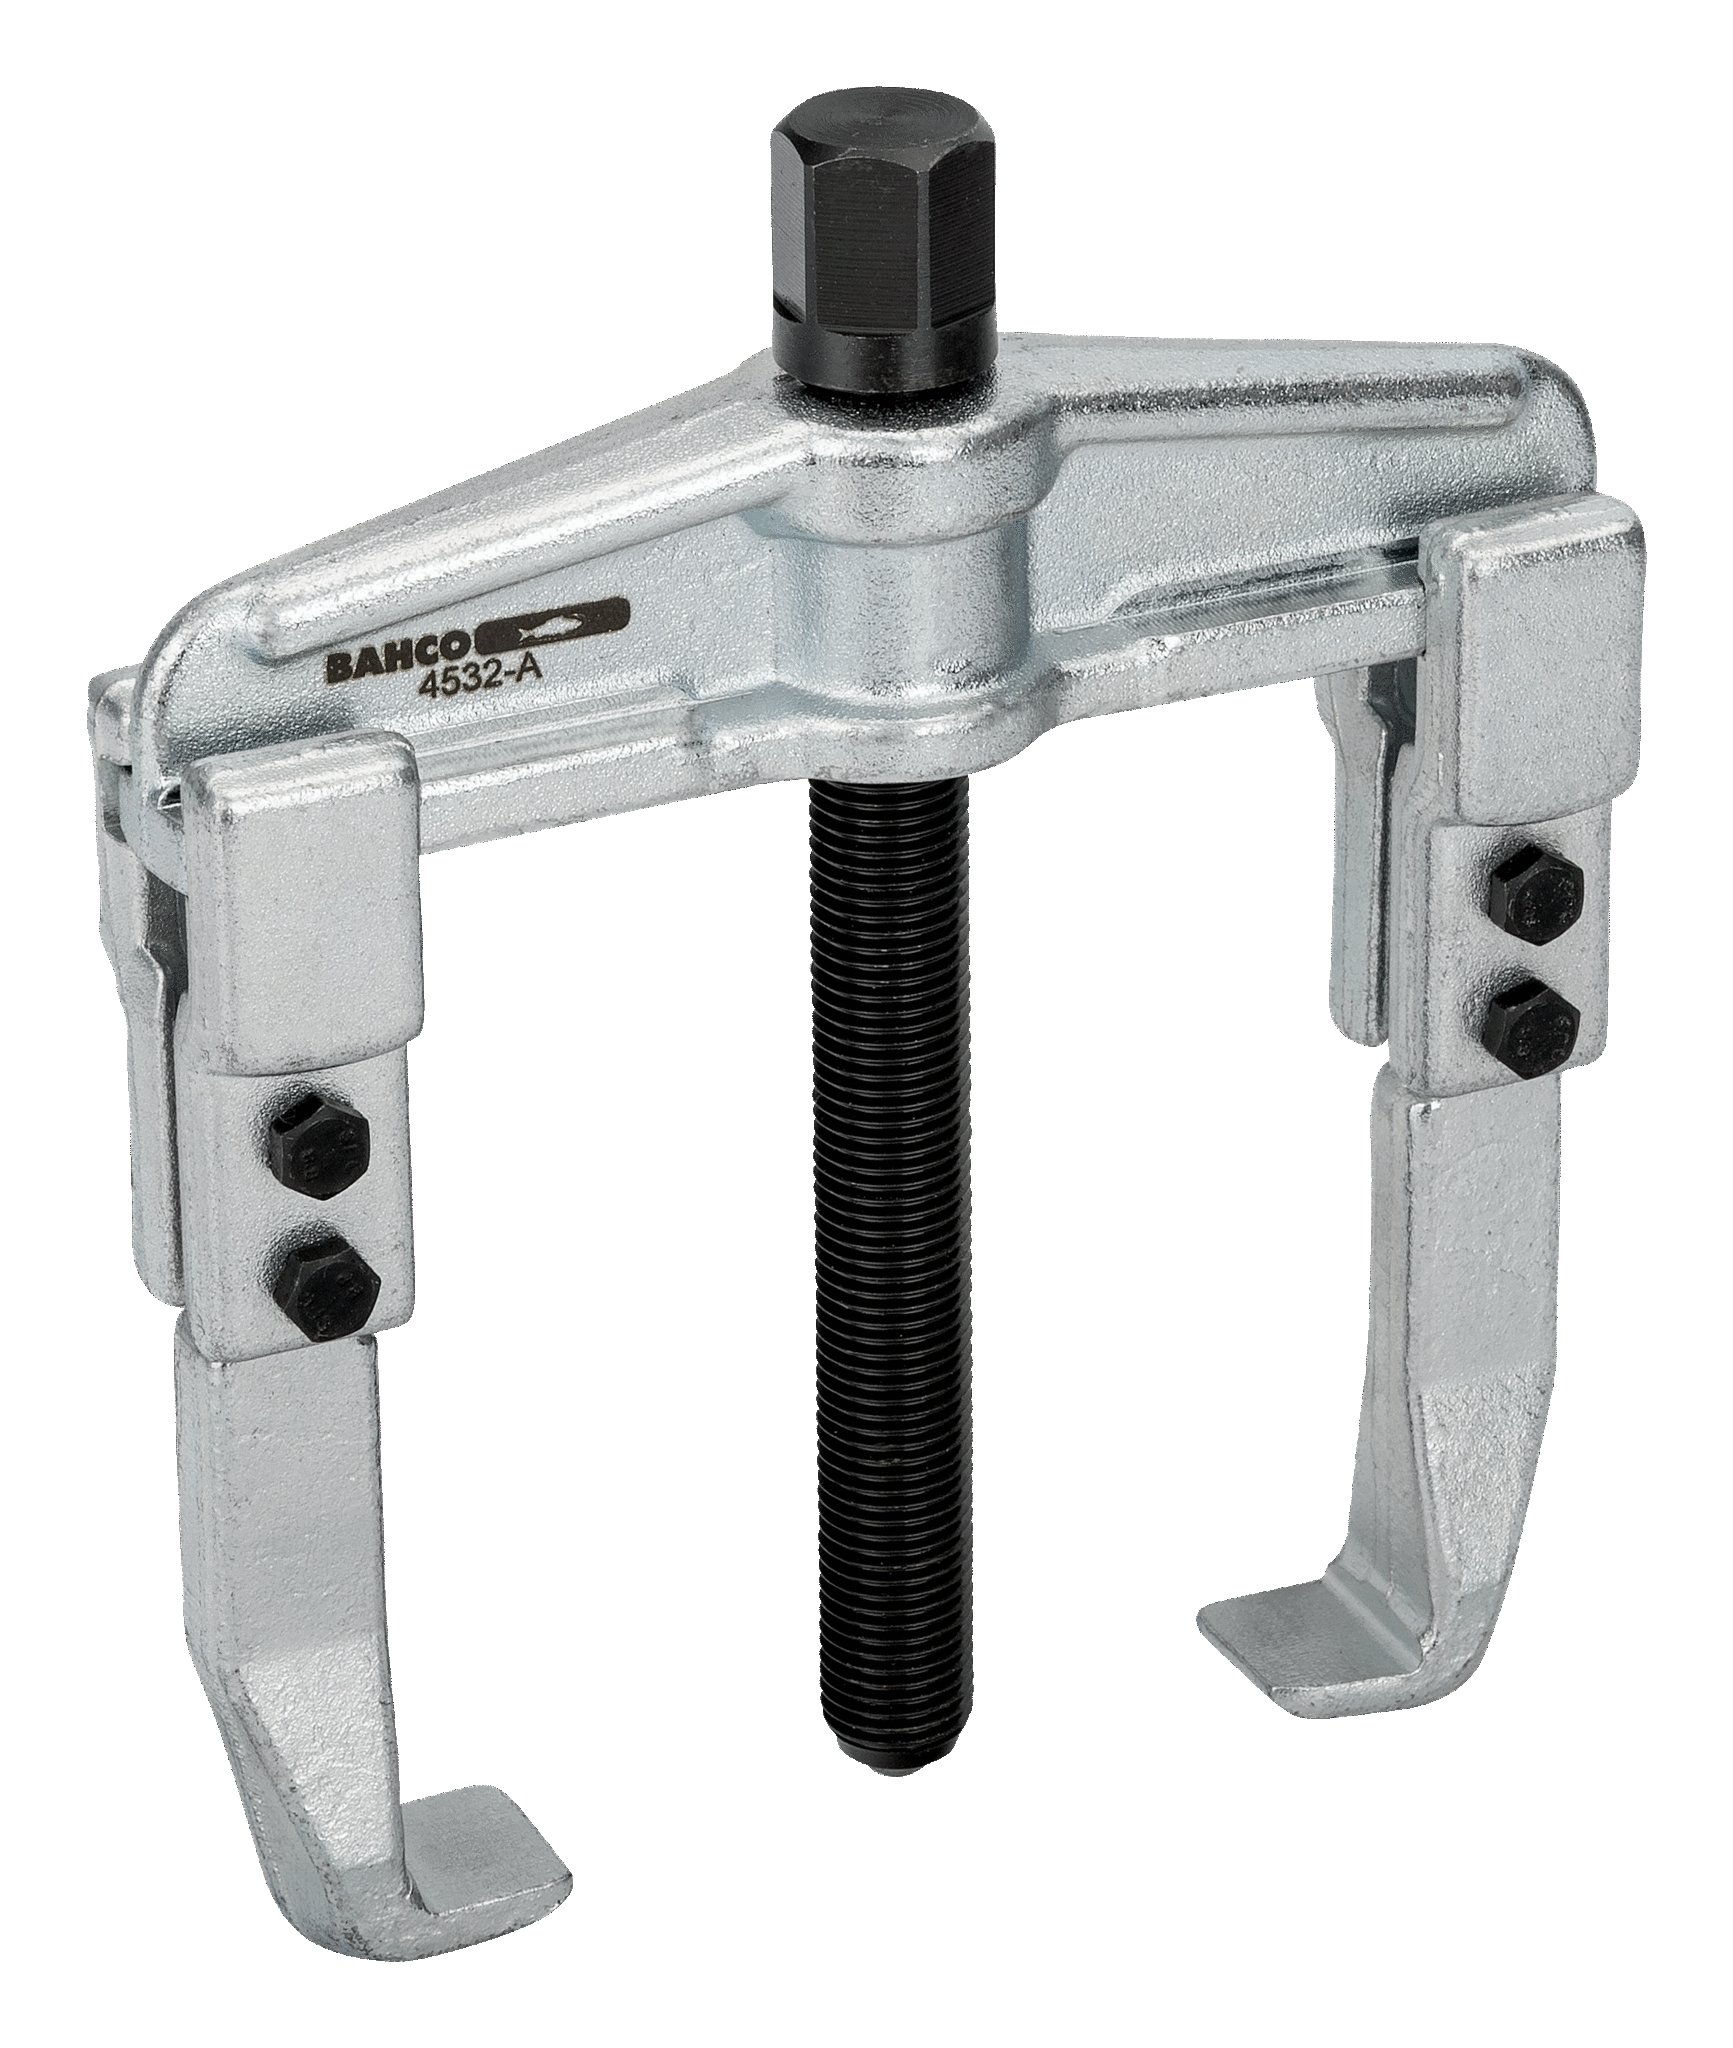 Bahco Ball Bearing Puller 30-37MM For 4522-1